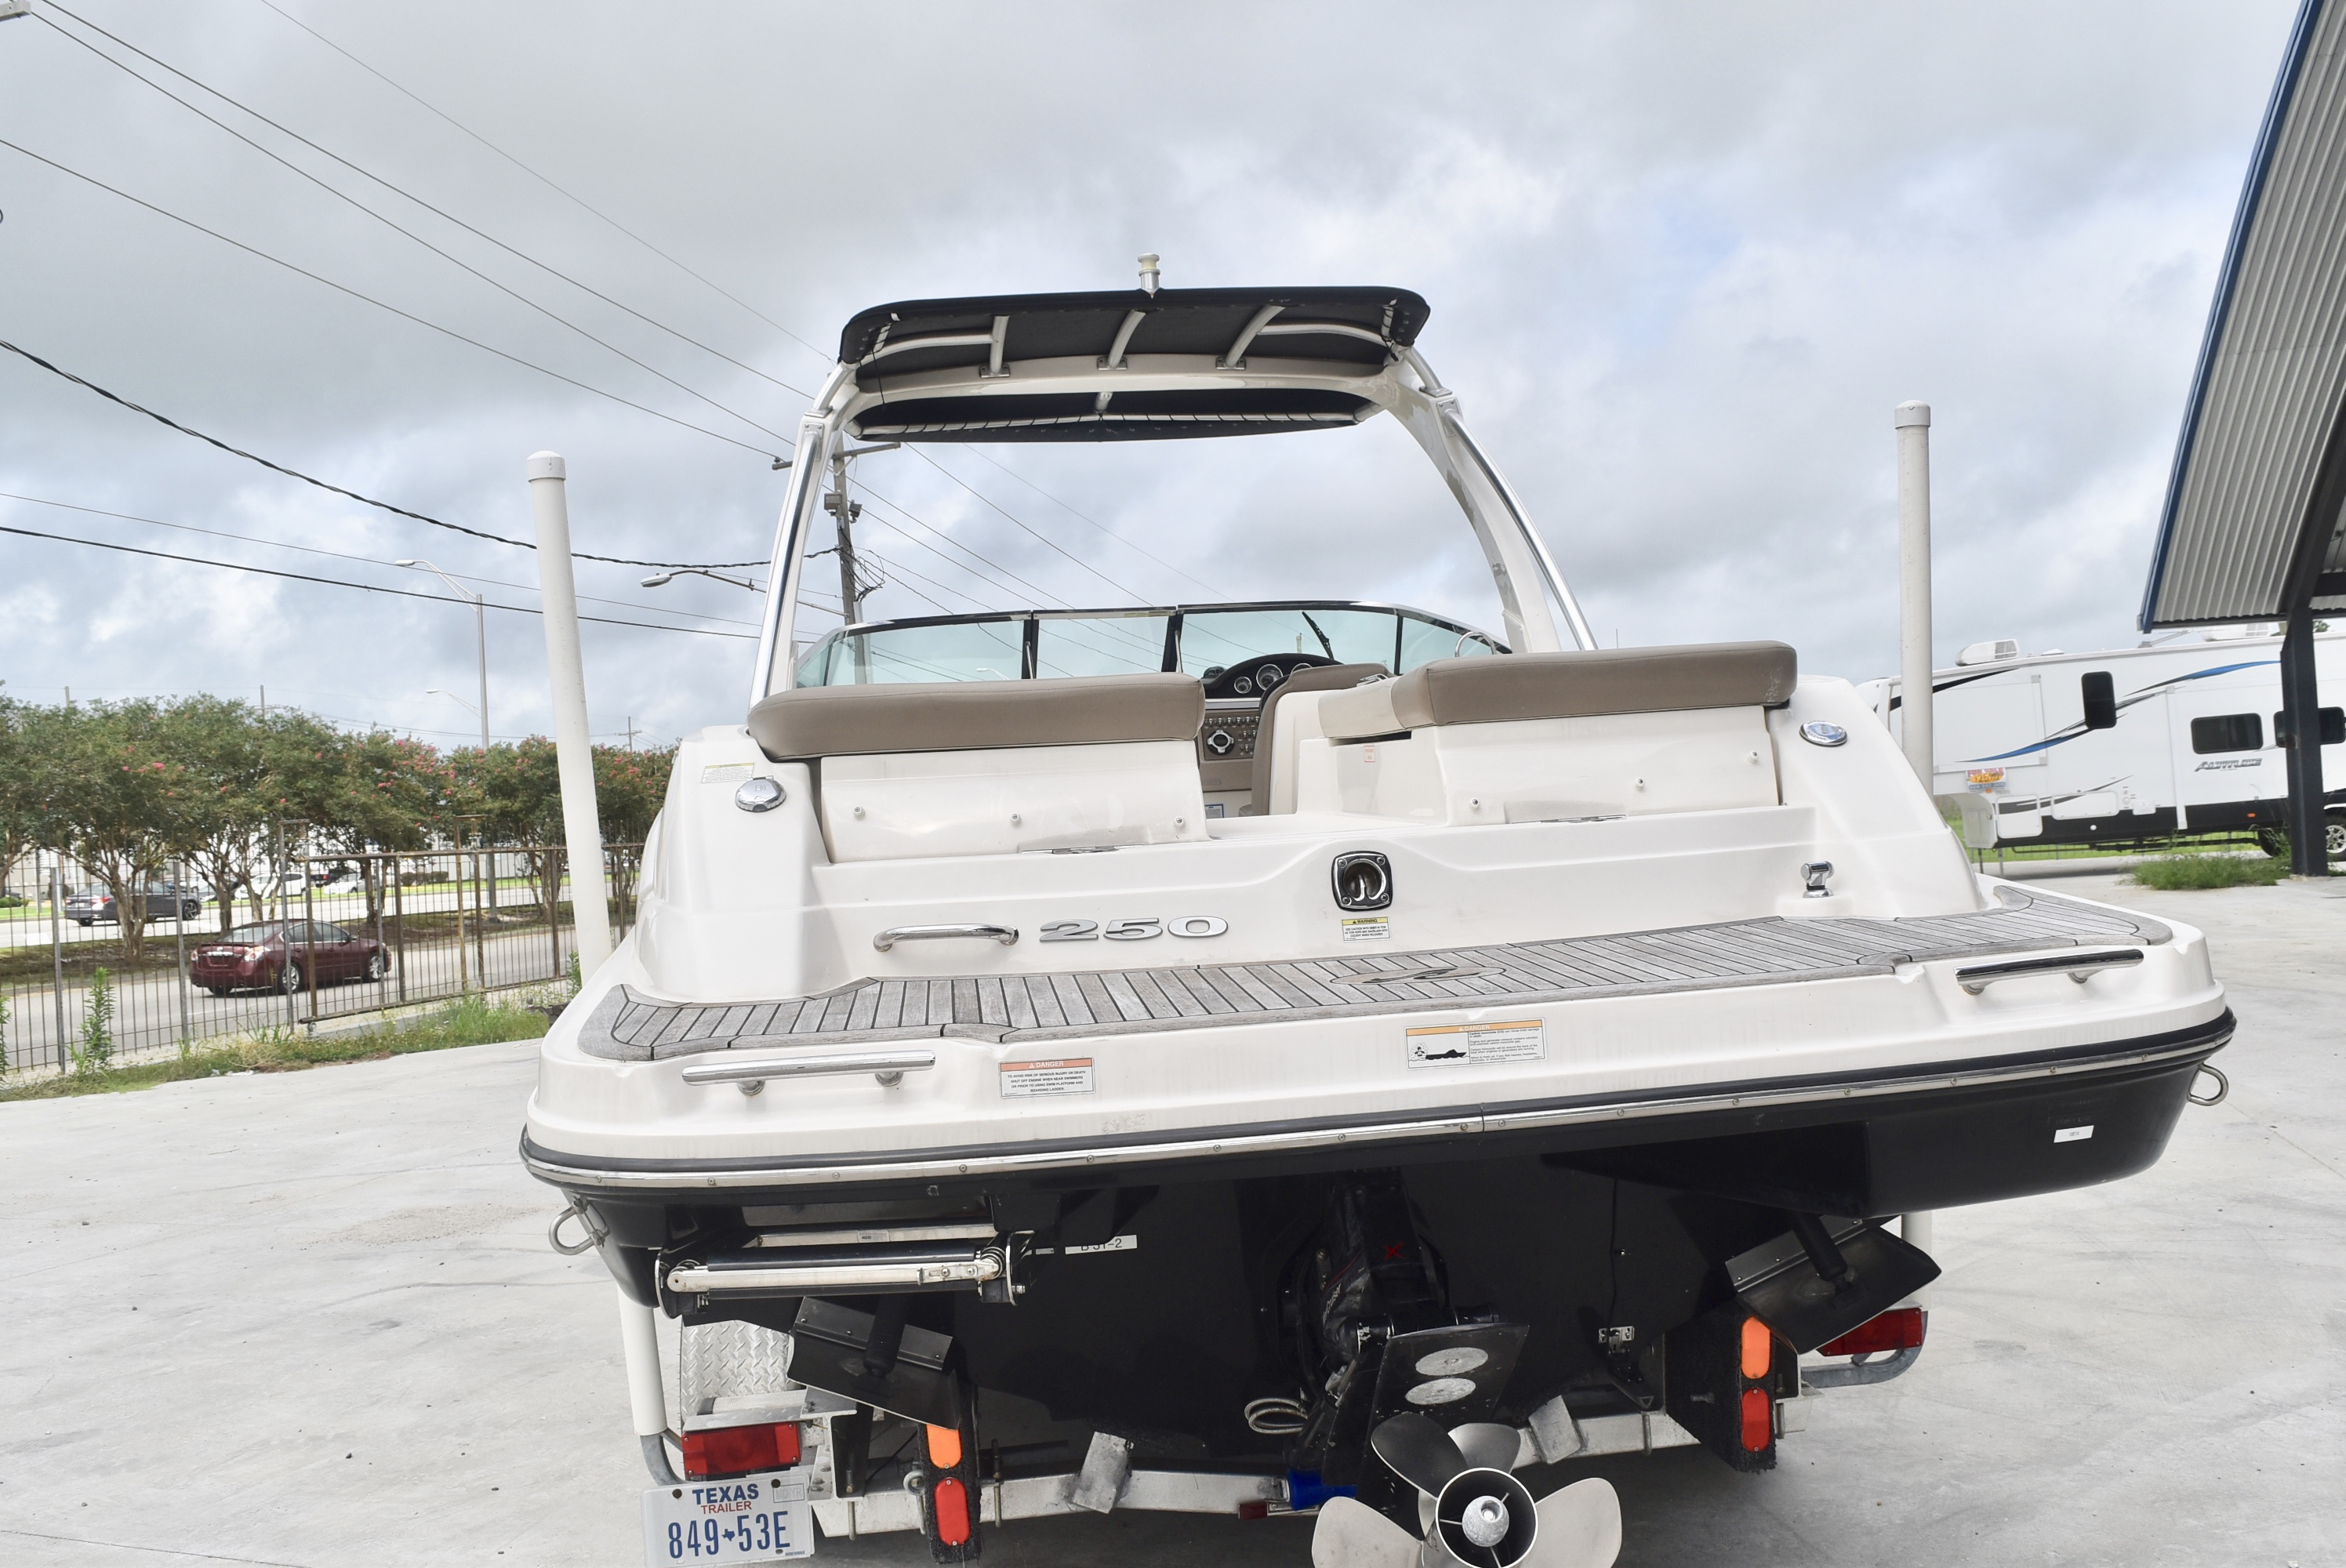 2013 Sea Ray boat for sale, model of the boat is 250 & Image # 5 of 10